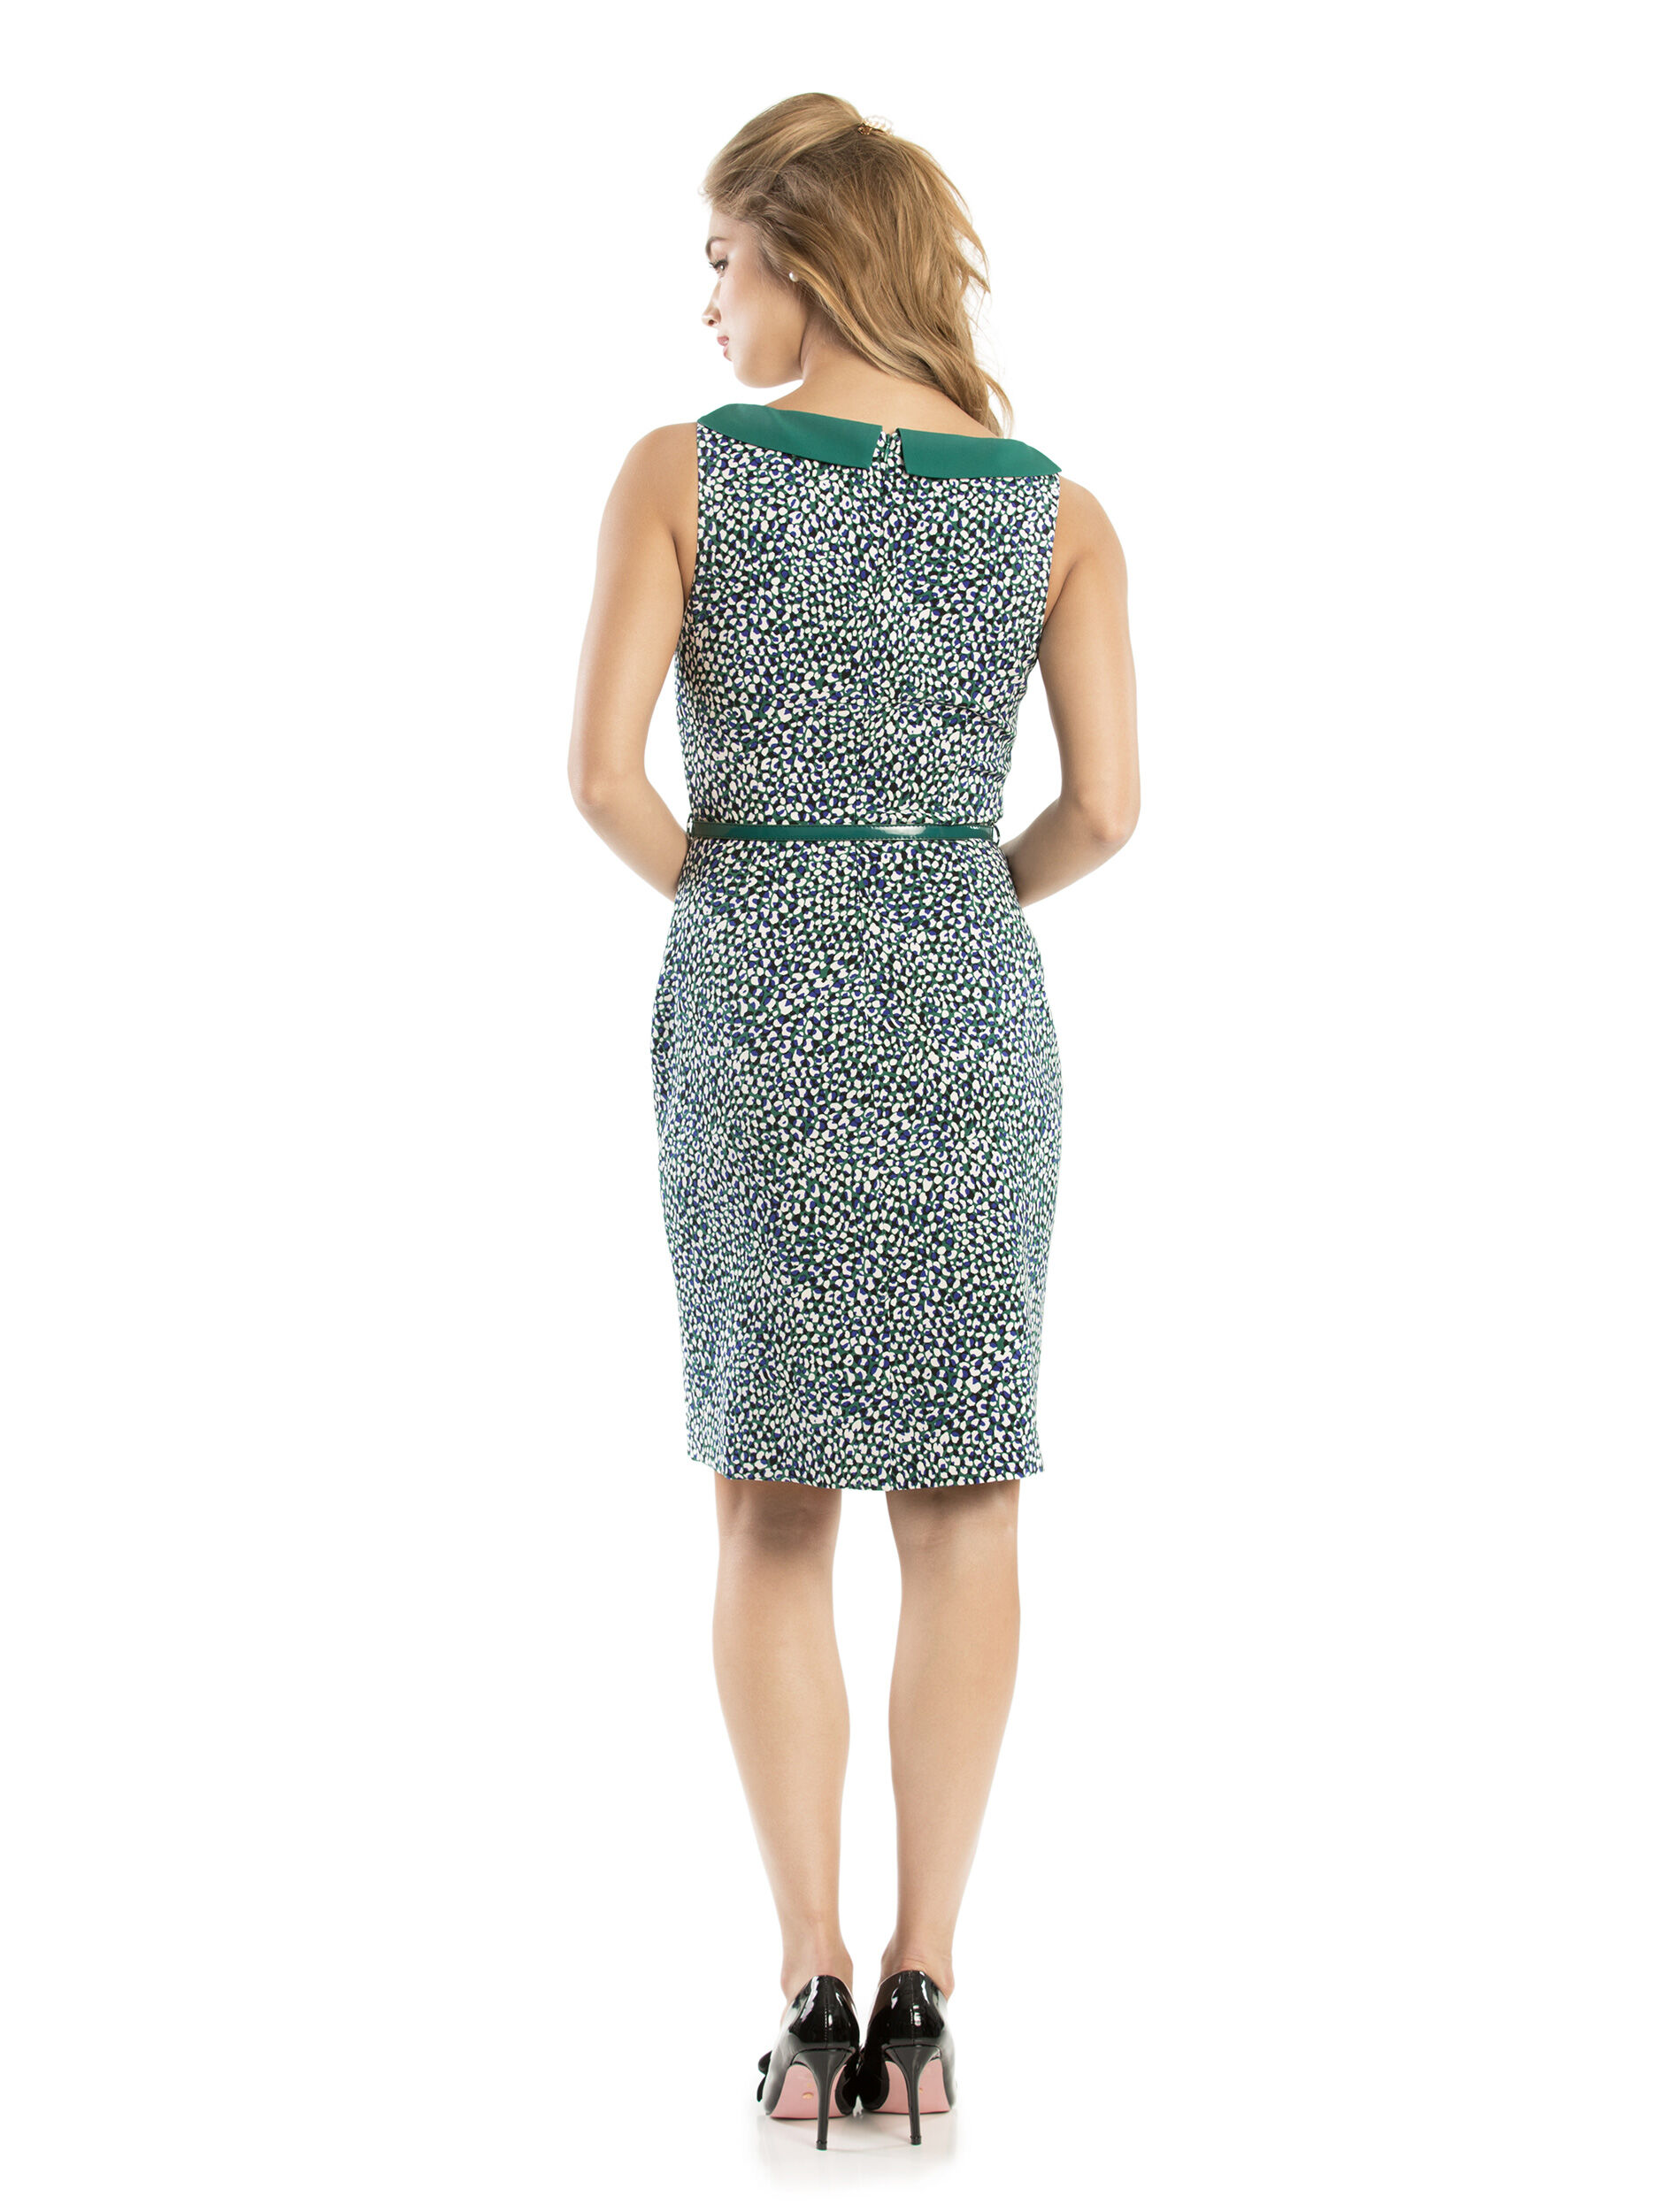 Super Speckle Dress